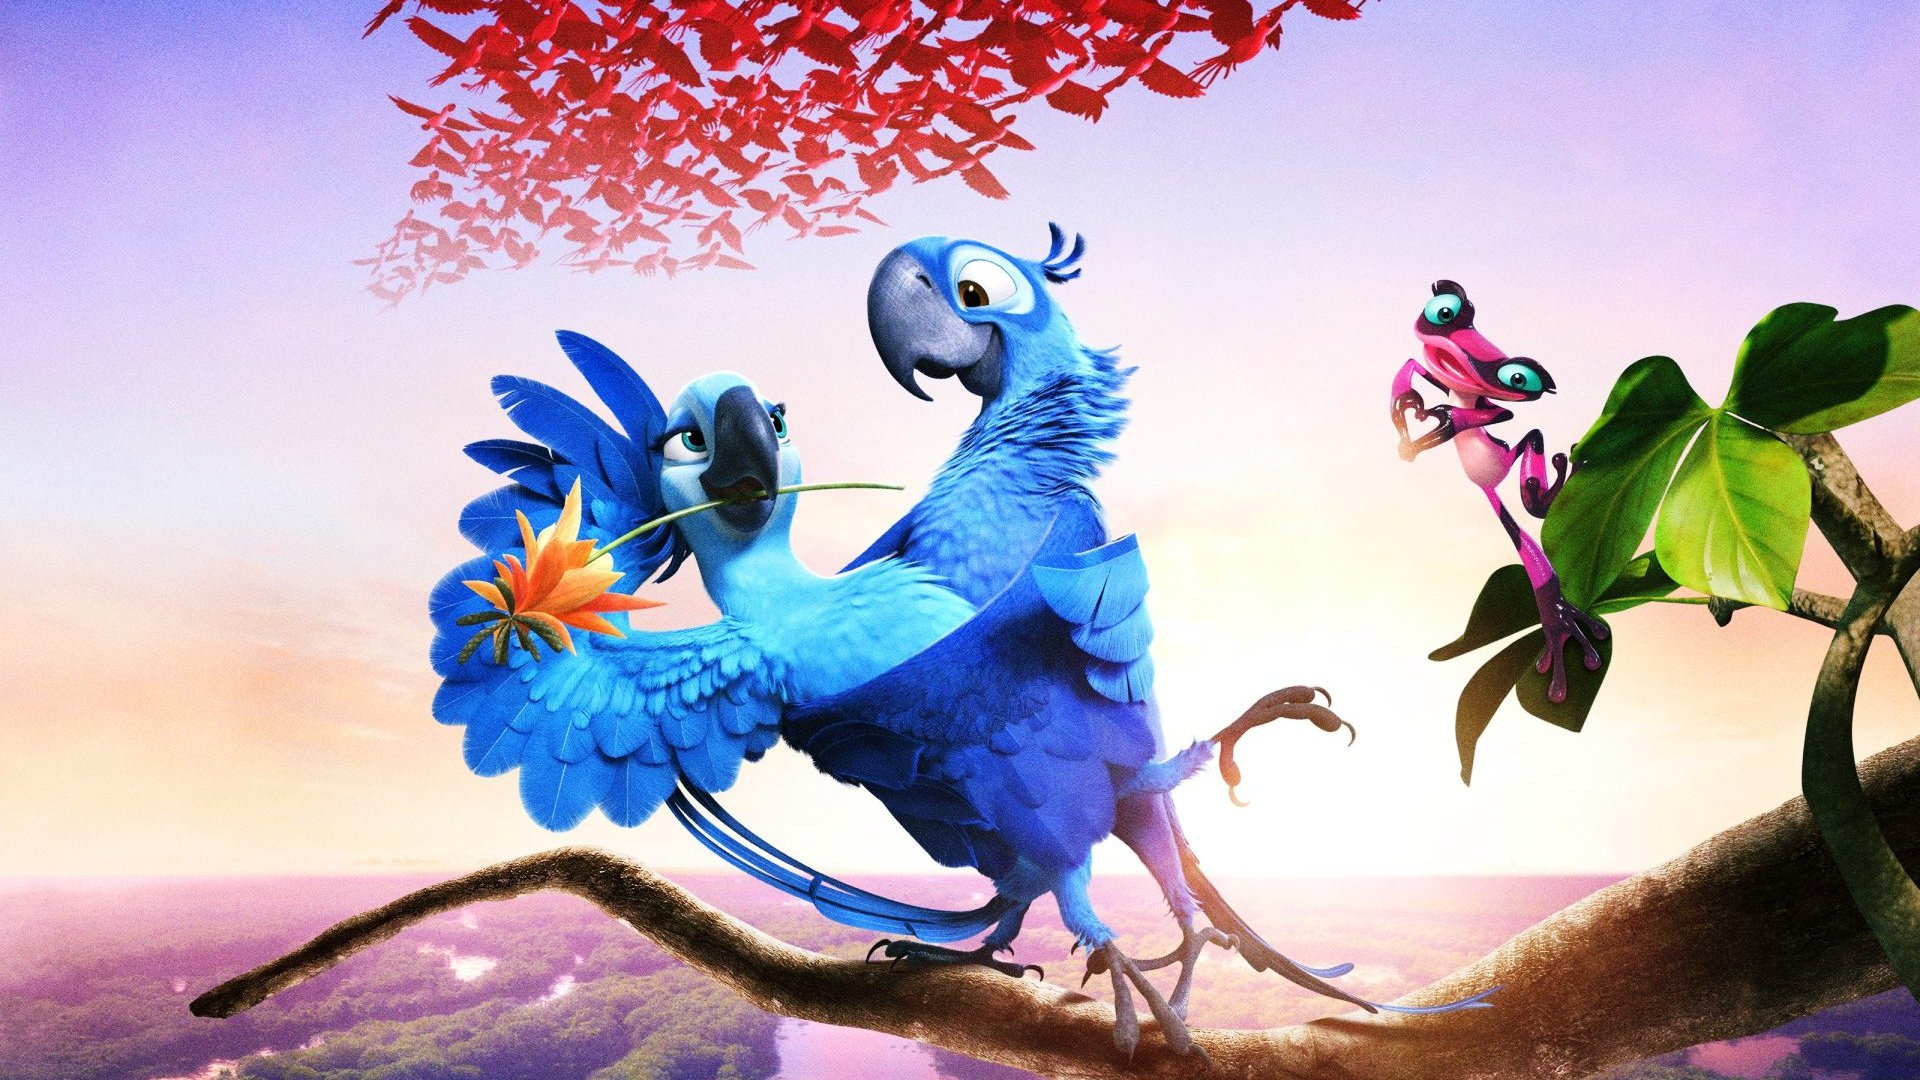 Rio 2 HD Wallpaper | Background Image | 1920x1080 | ID:618380 - Wallpaper Abyss